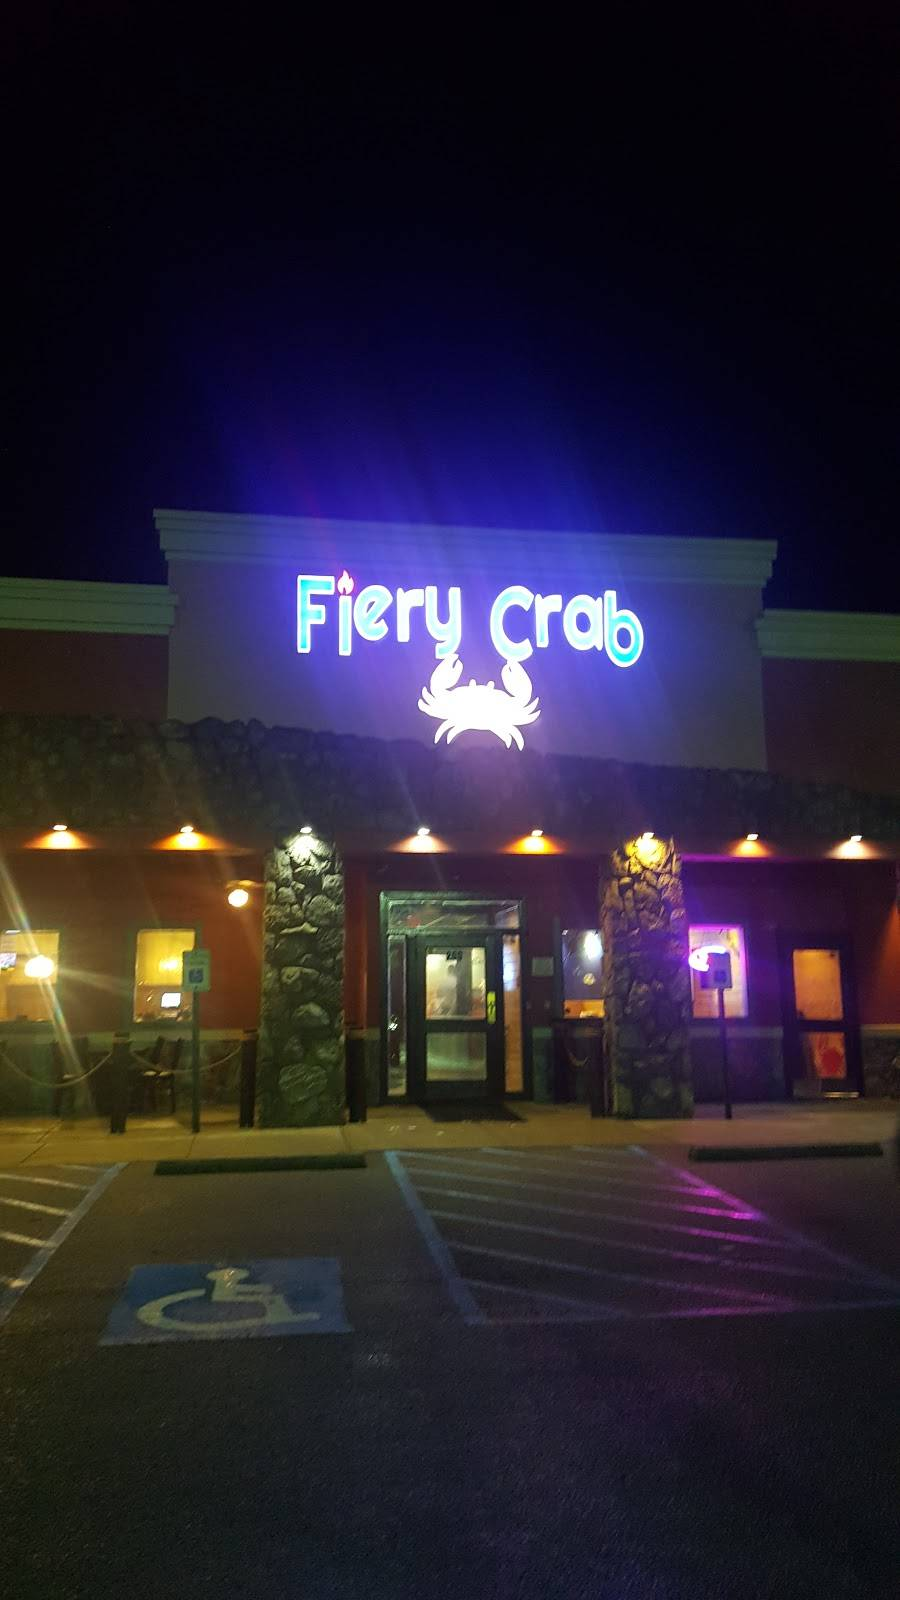 Fiery Crab Juicy Seafood | restaurant | 200 Graces Way, Columbia, SC 29229, USA | 8039396616 OR +1 803-939-6616